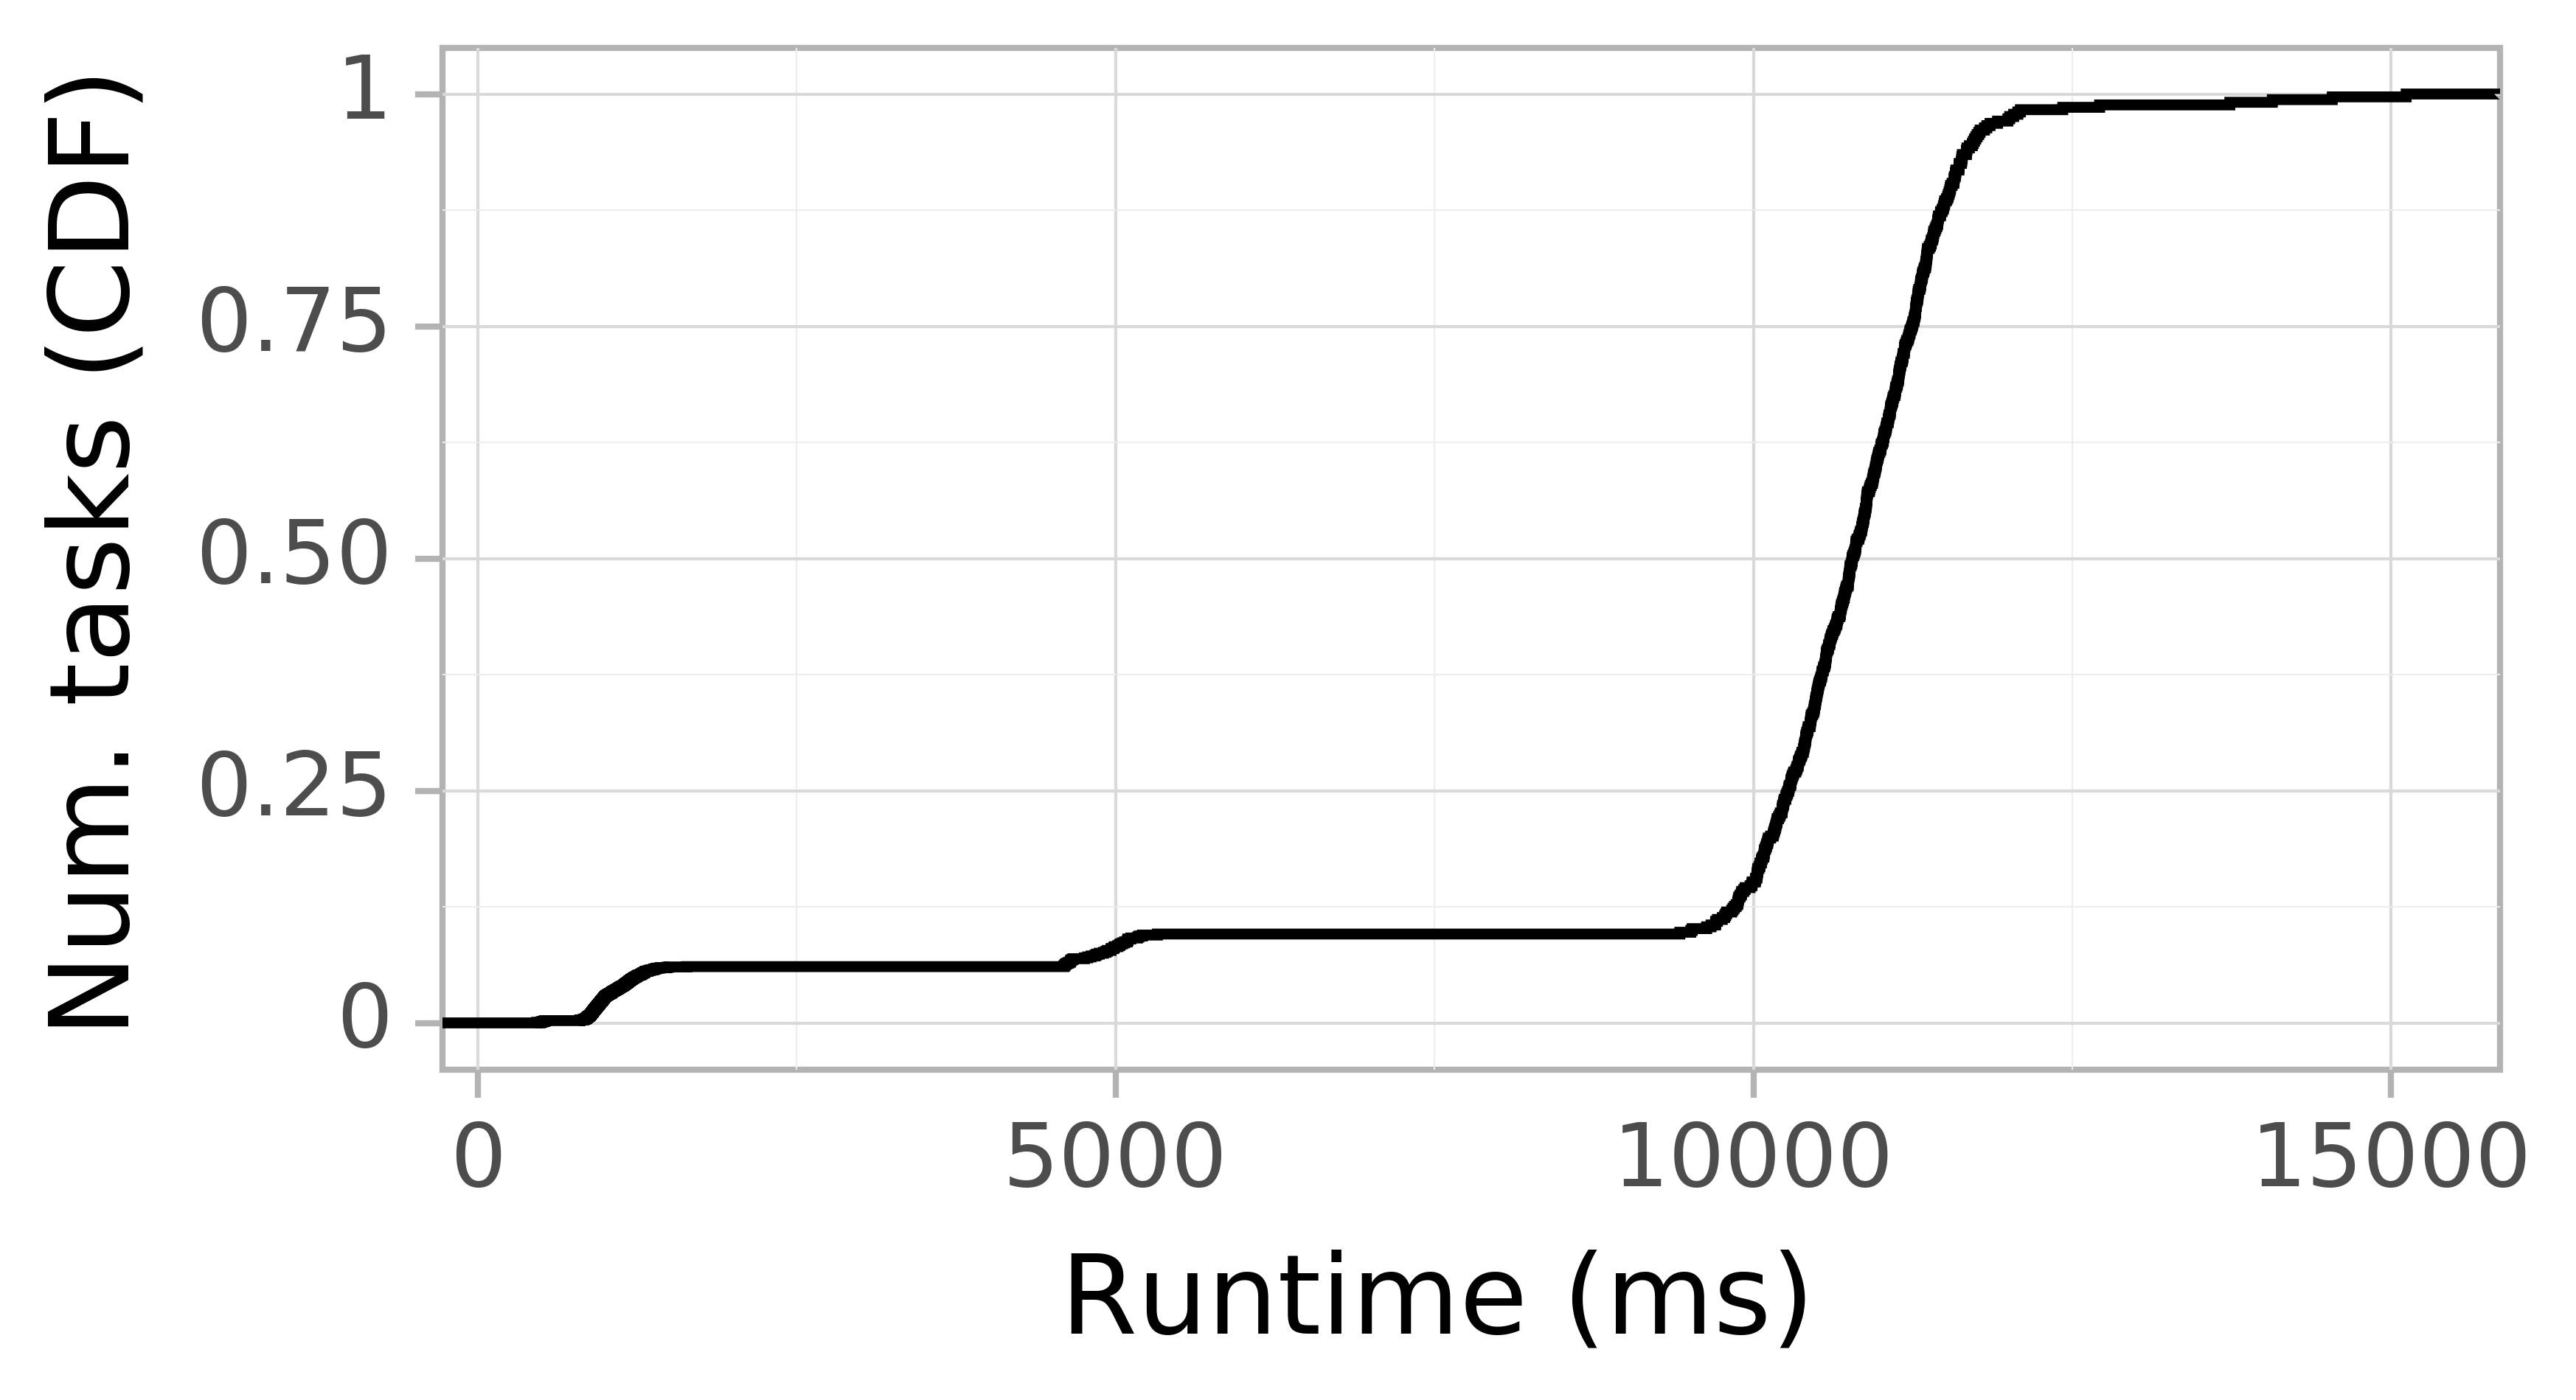 Task runtime CDF graph for the askalon-new_ee37 trace.